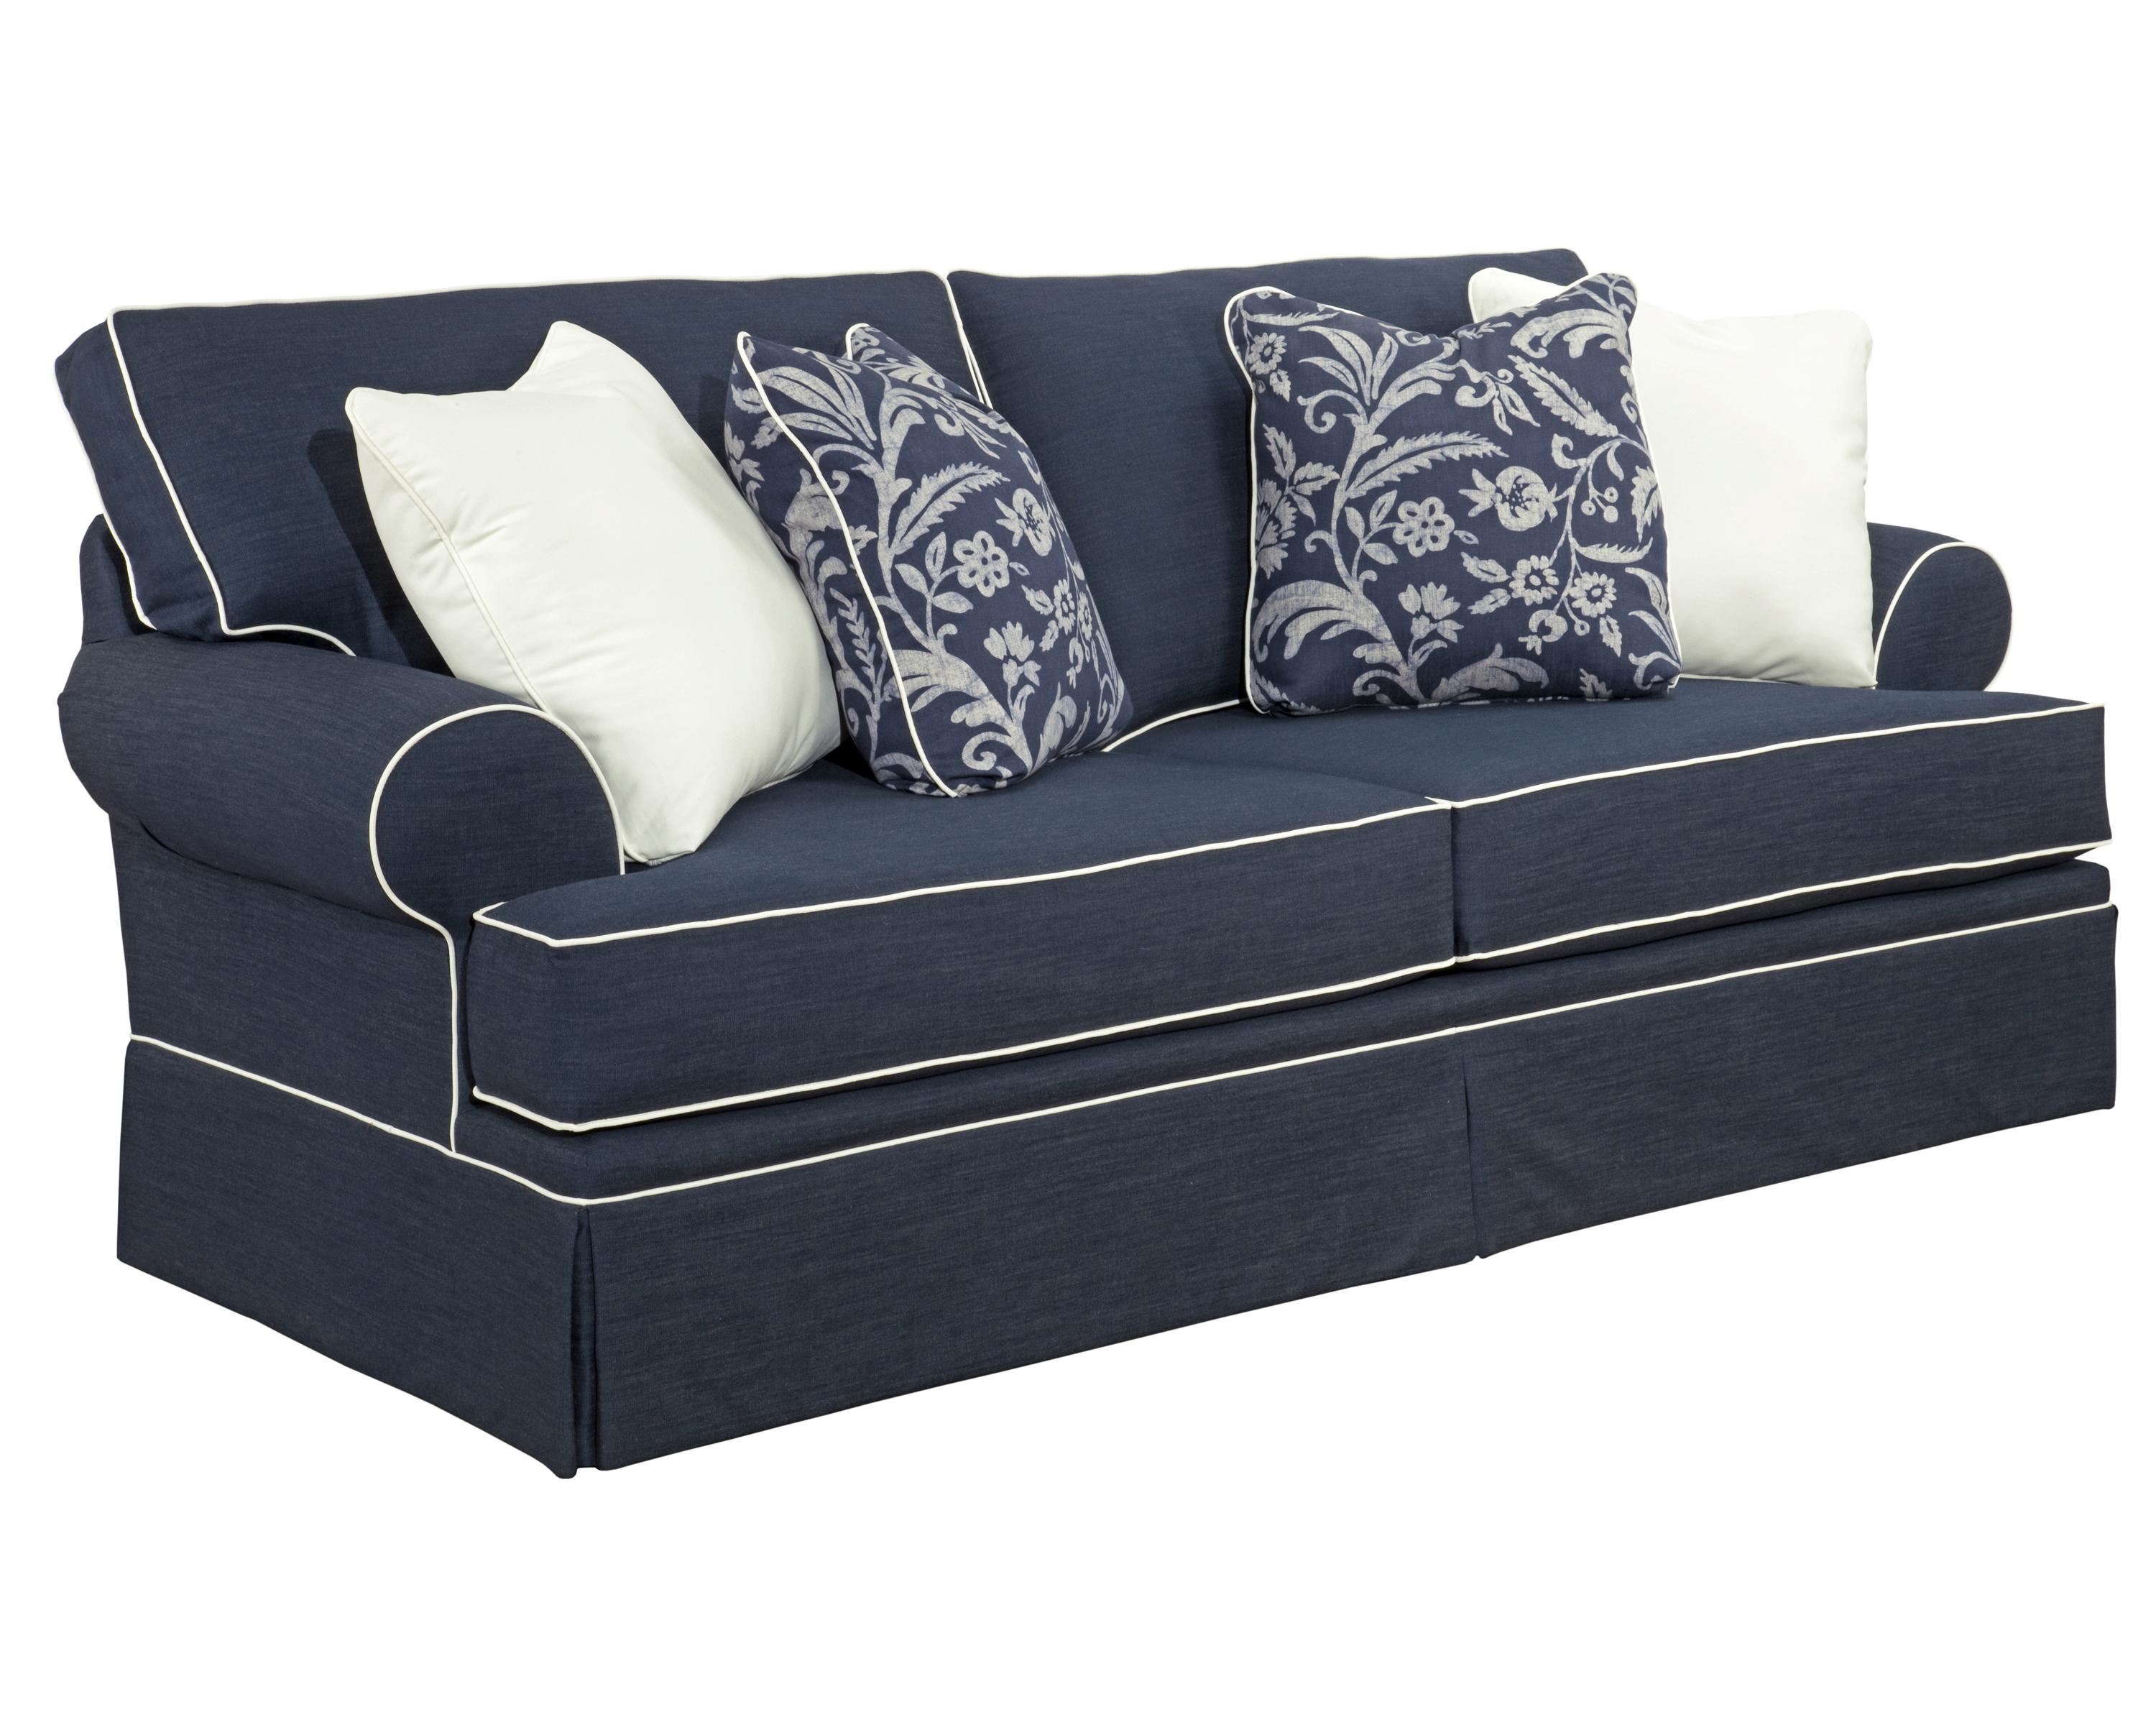 Broyhill furniture emily 6262 3 casual style sofa with for Casual couch